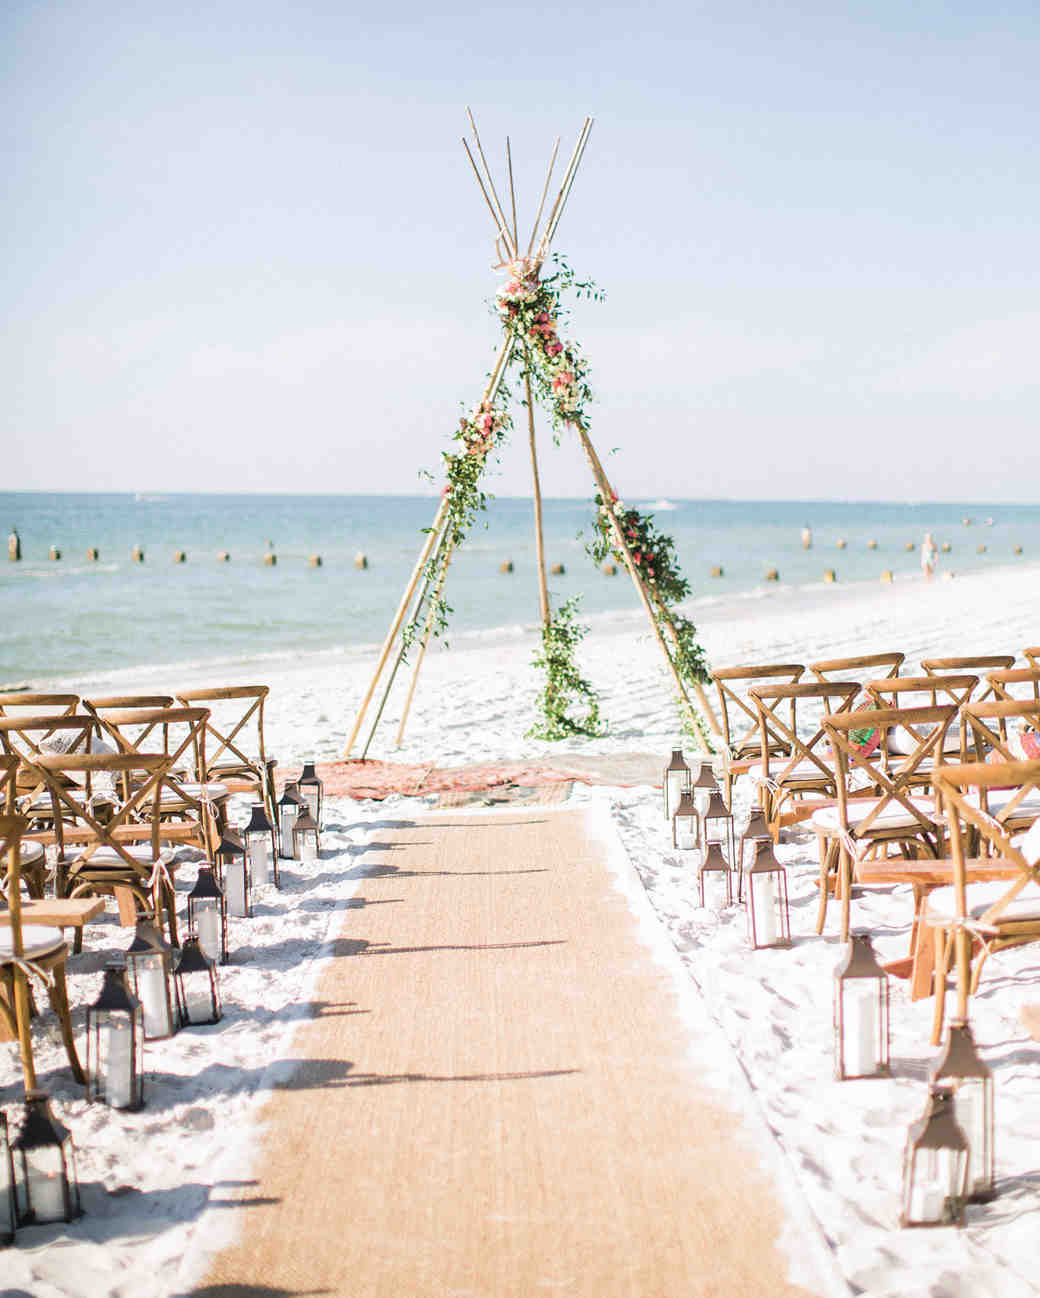 Beach Wedding Ceremony Europe: 22 Ideas For An Elevated Beach Wedding